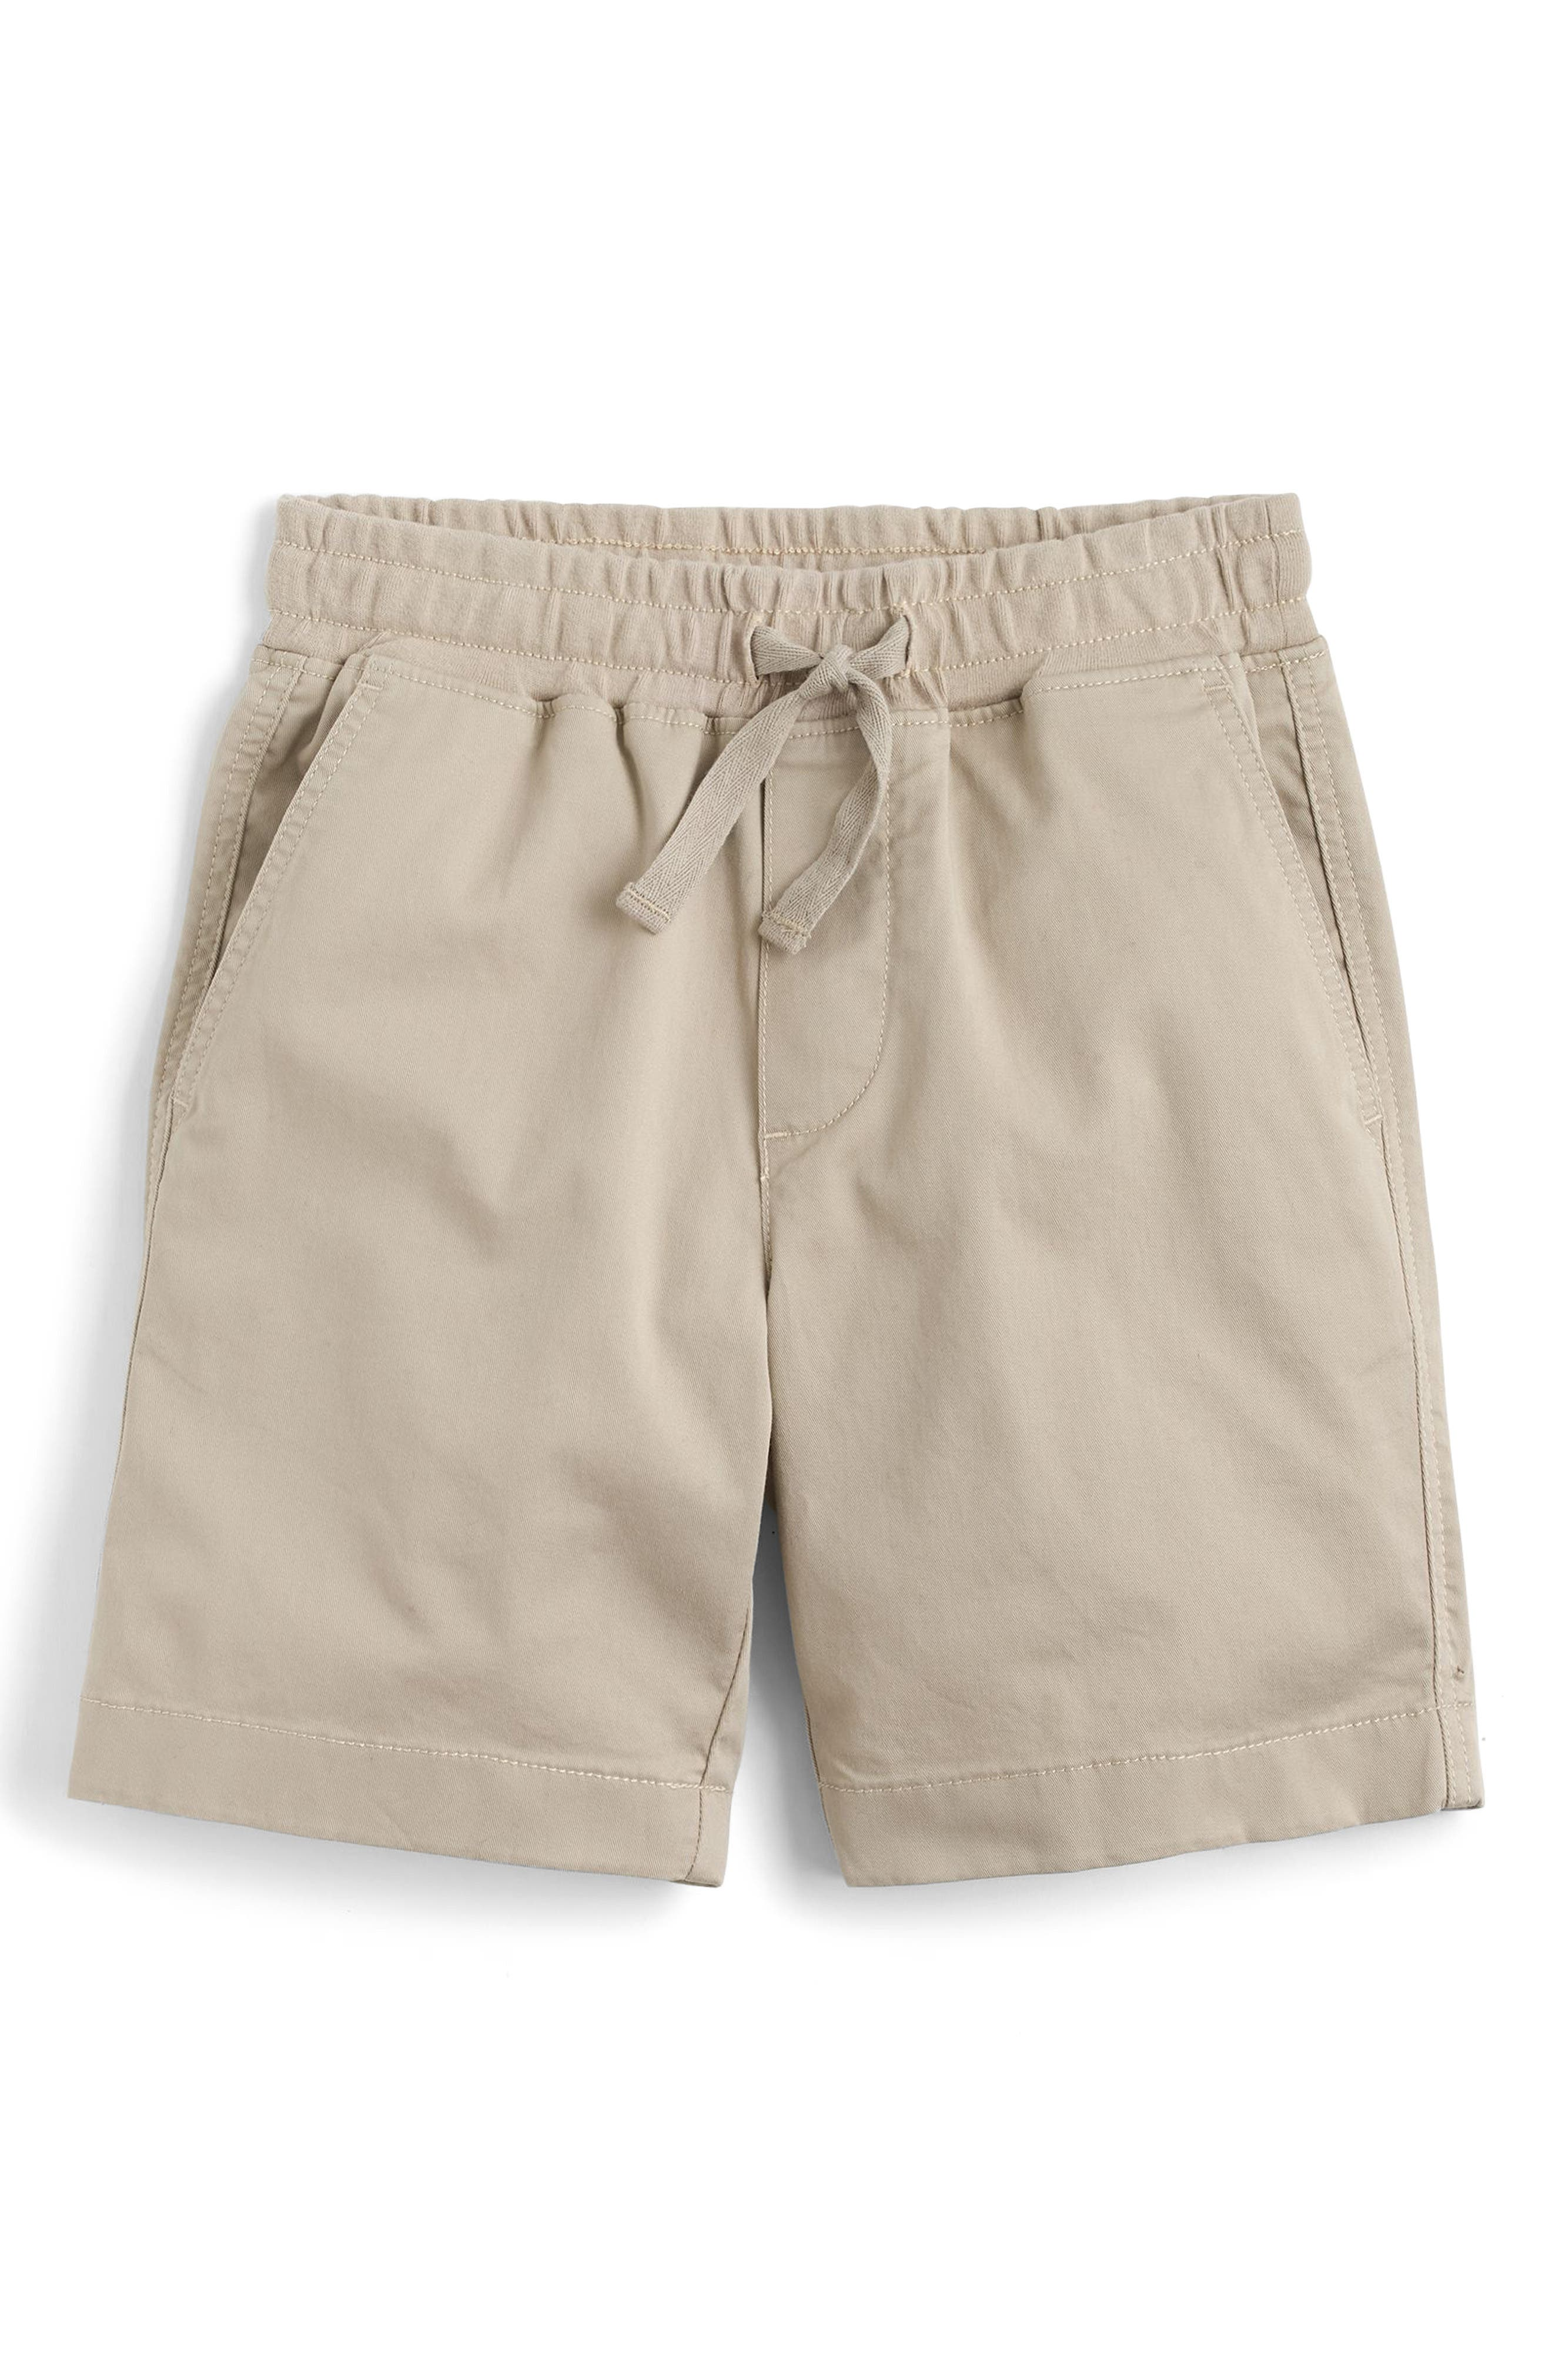 crewcuts by J.Crew Stretch Pull-On Shorts (Toddler Boys, Little Boys & Big Boys)